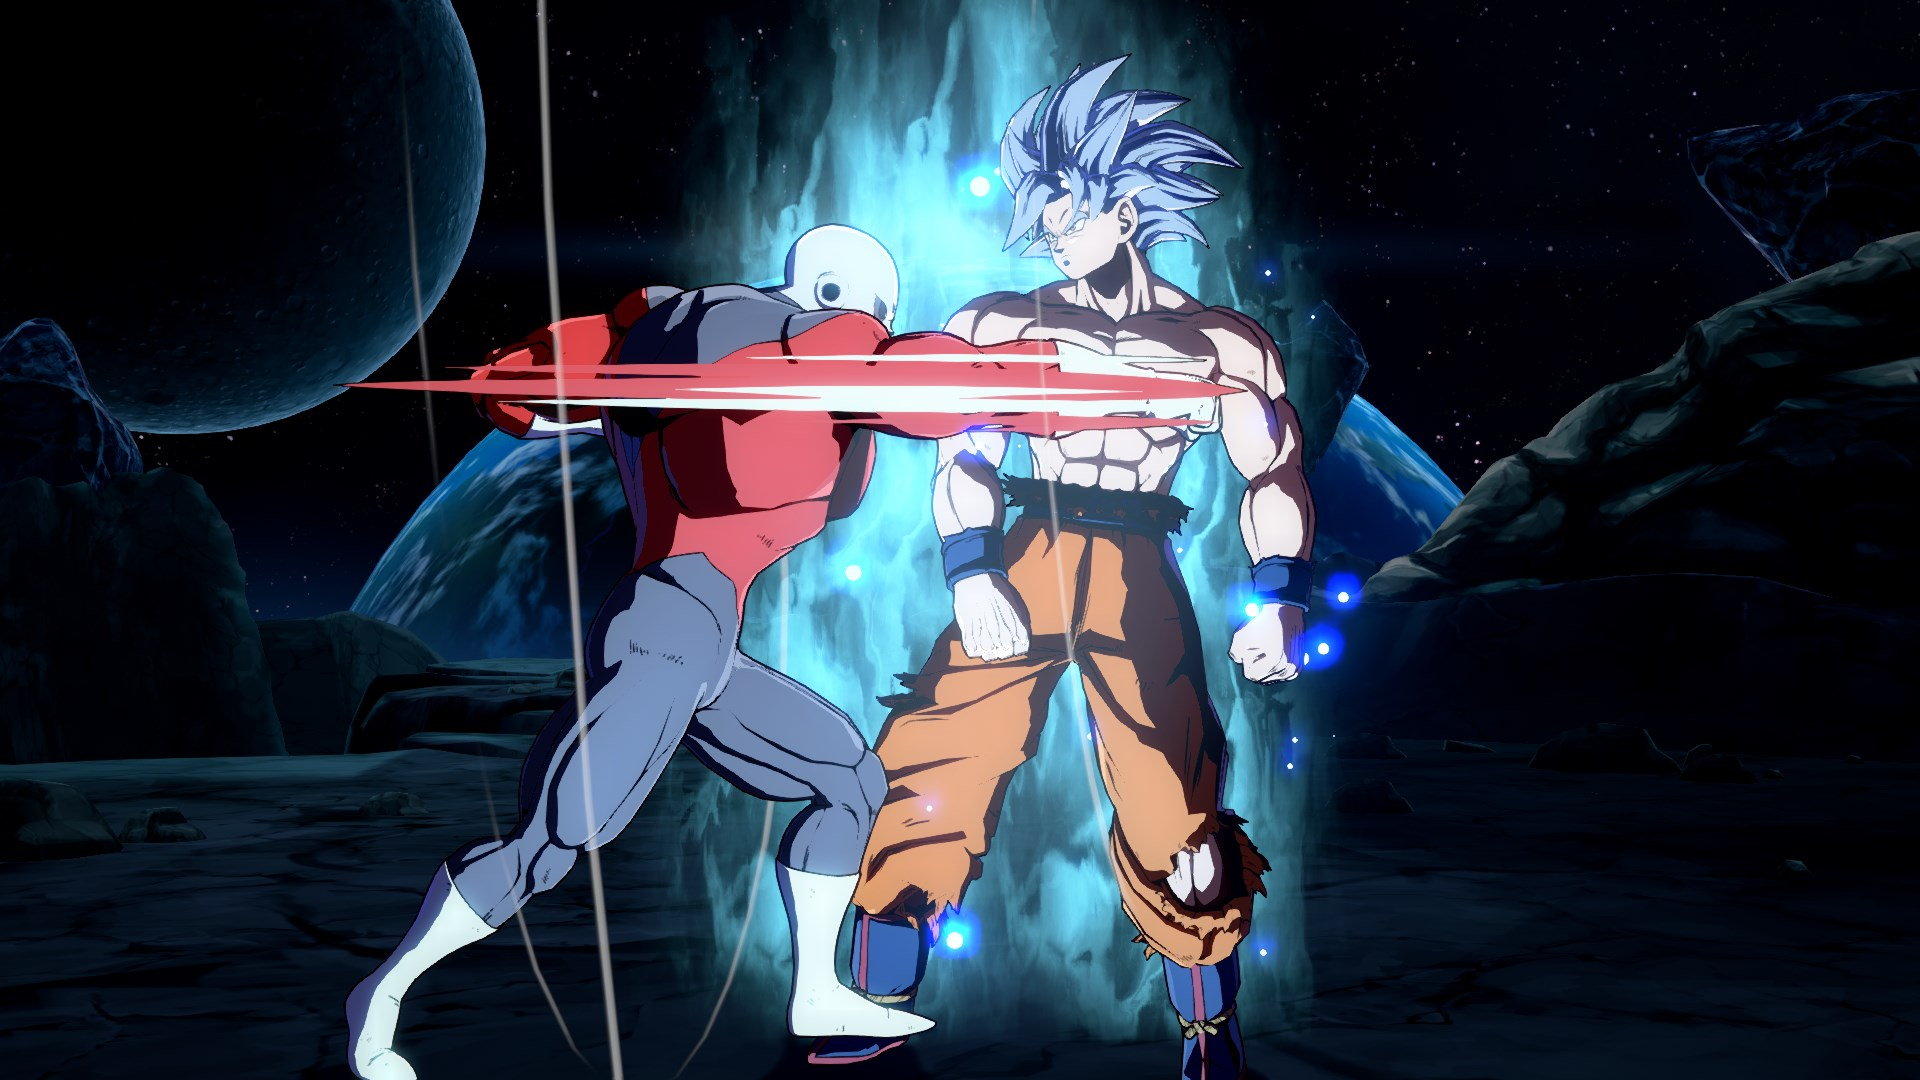 Dragon Ball FighterZ DLC Character Goku Ultra Instinct Screen 10